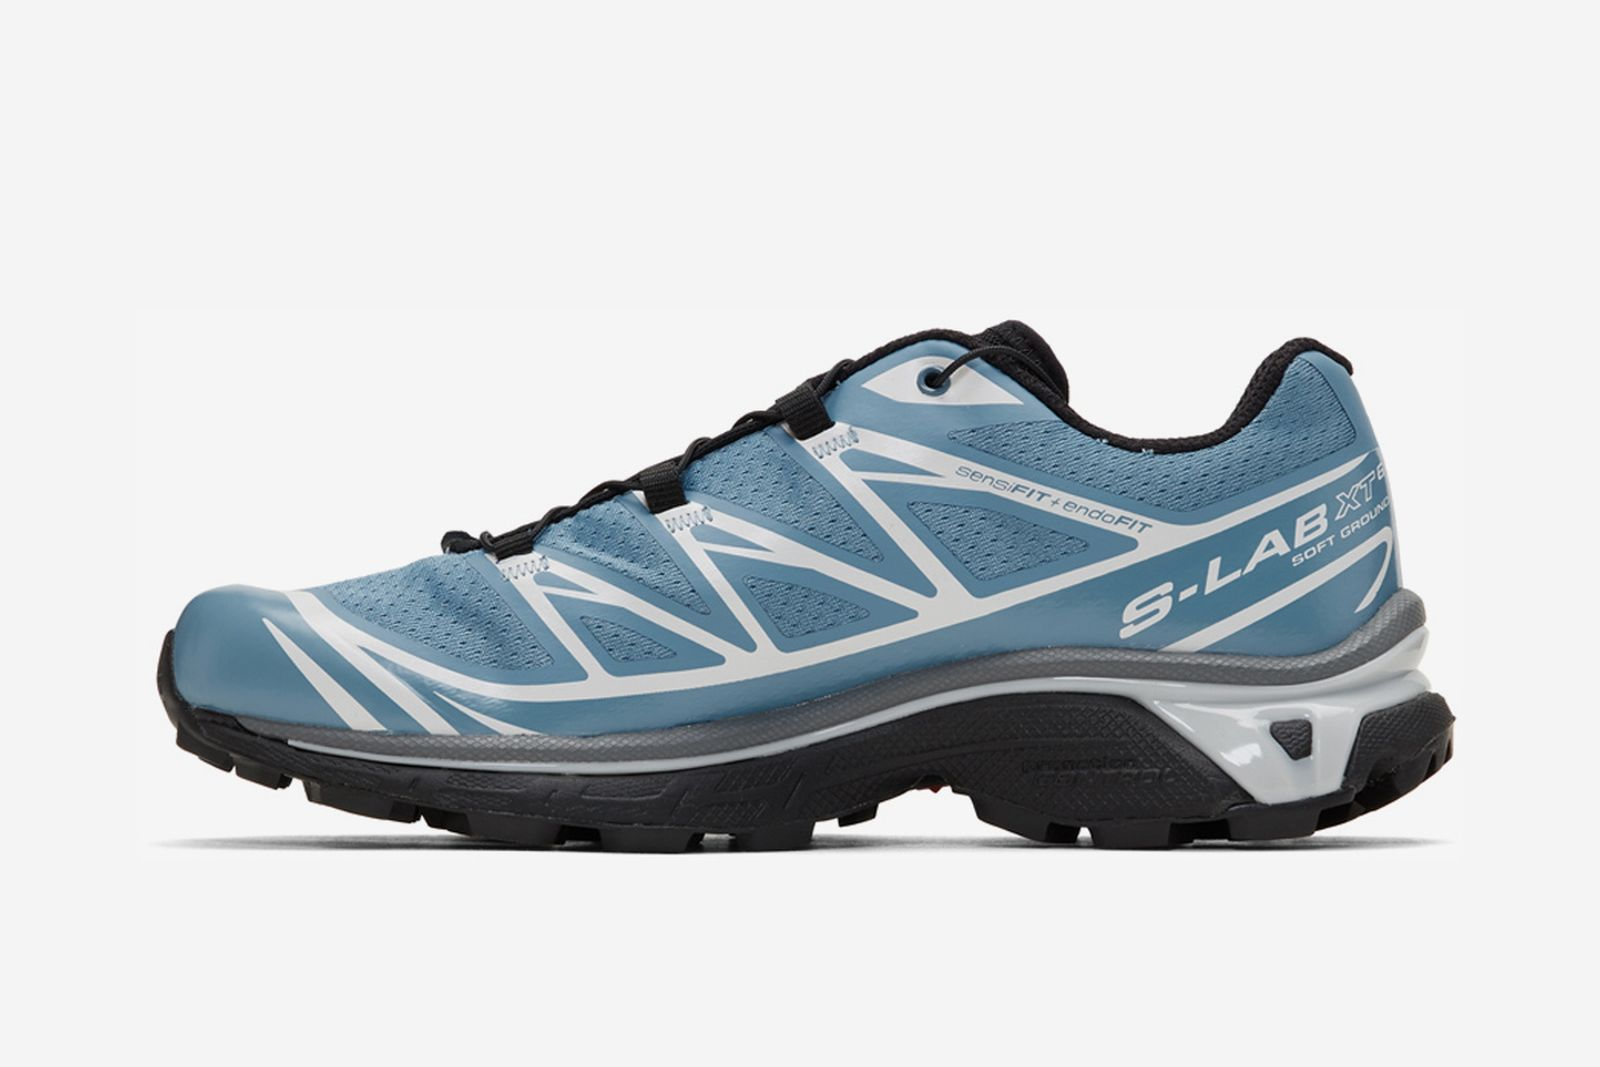 salomon s lab xt 6 adv buy here now Salomon S/LAB